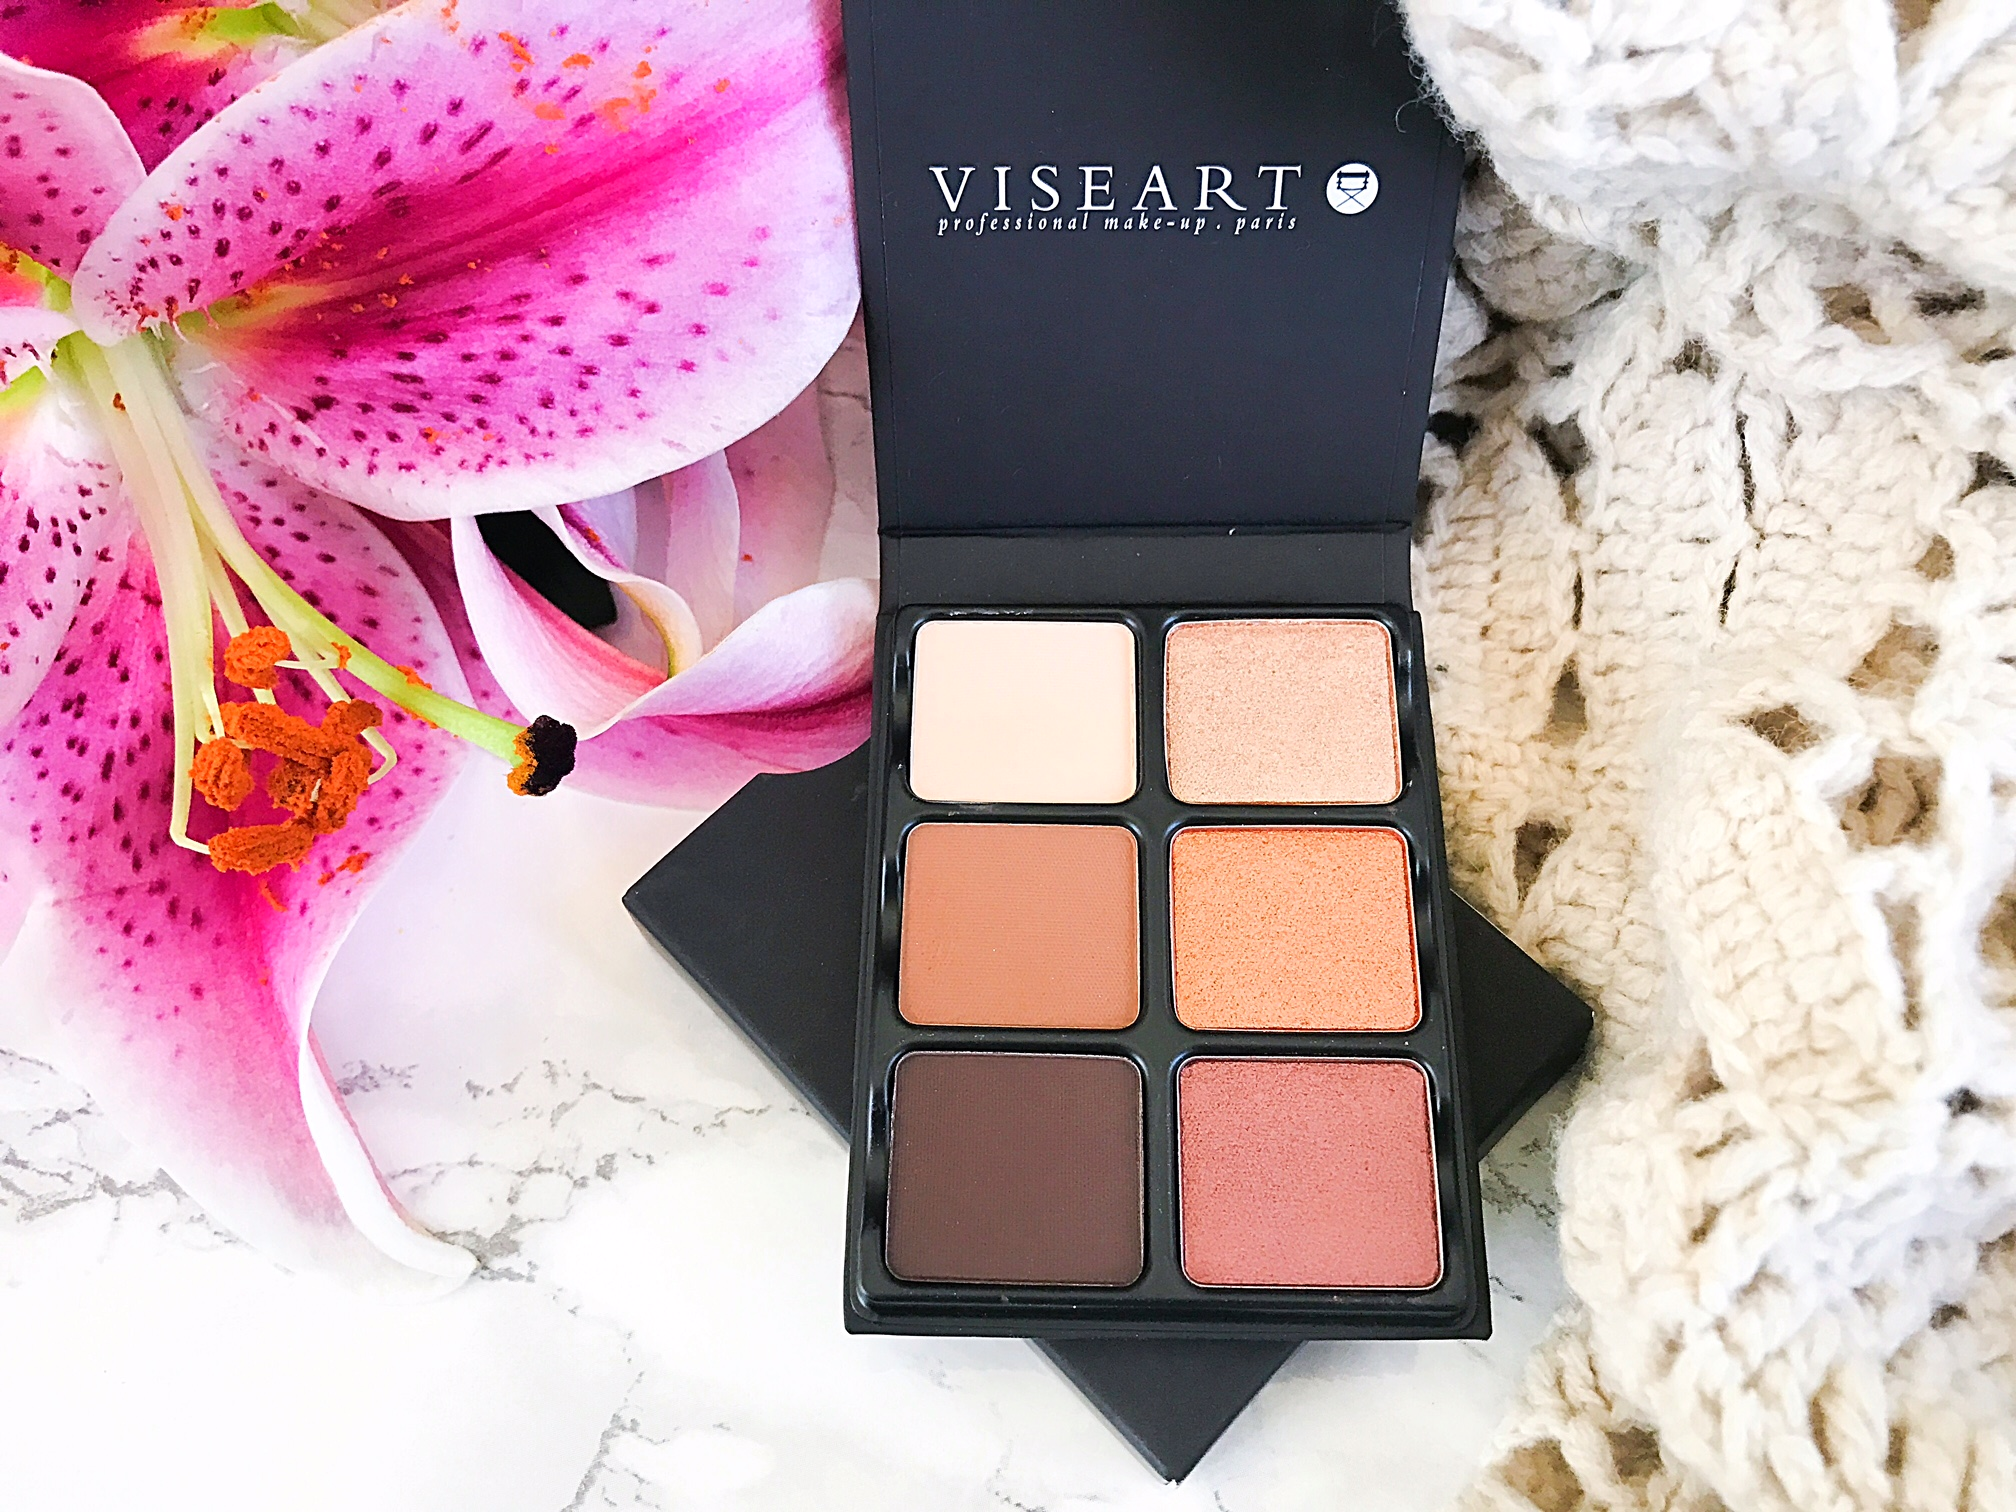 Effortlessly Elegant Makeup With Viseart Theory Ii Minx Palette 06 Paris Nudes All Cosmetics Are Individually Hand Made In France Making Them Very Parisian Chic